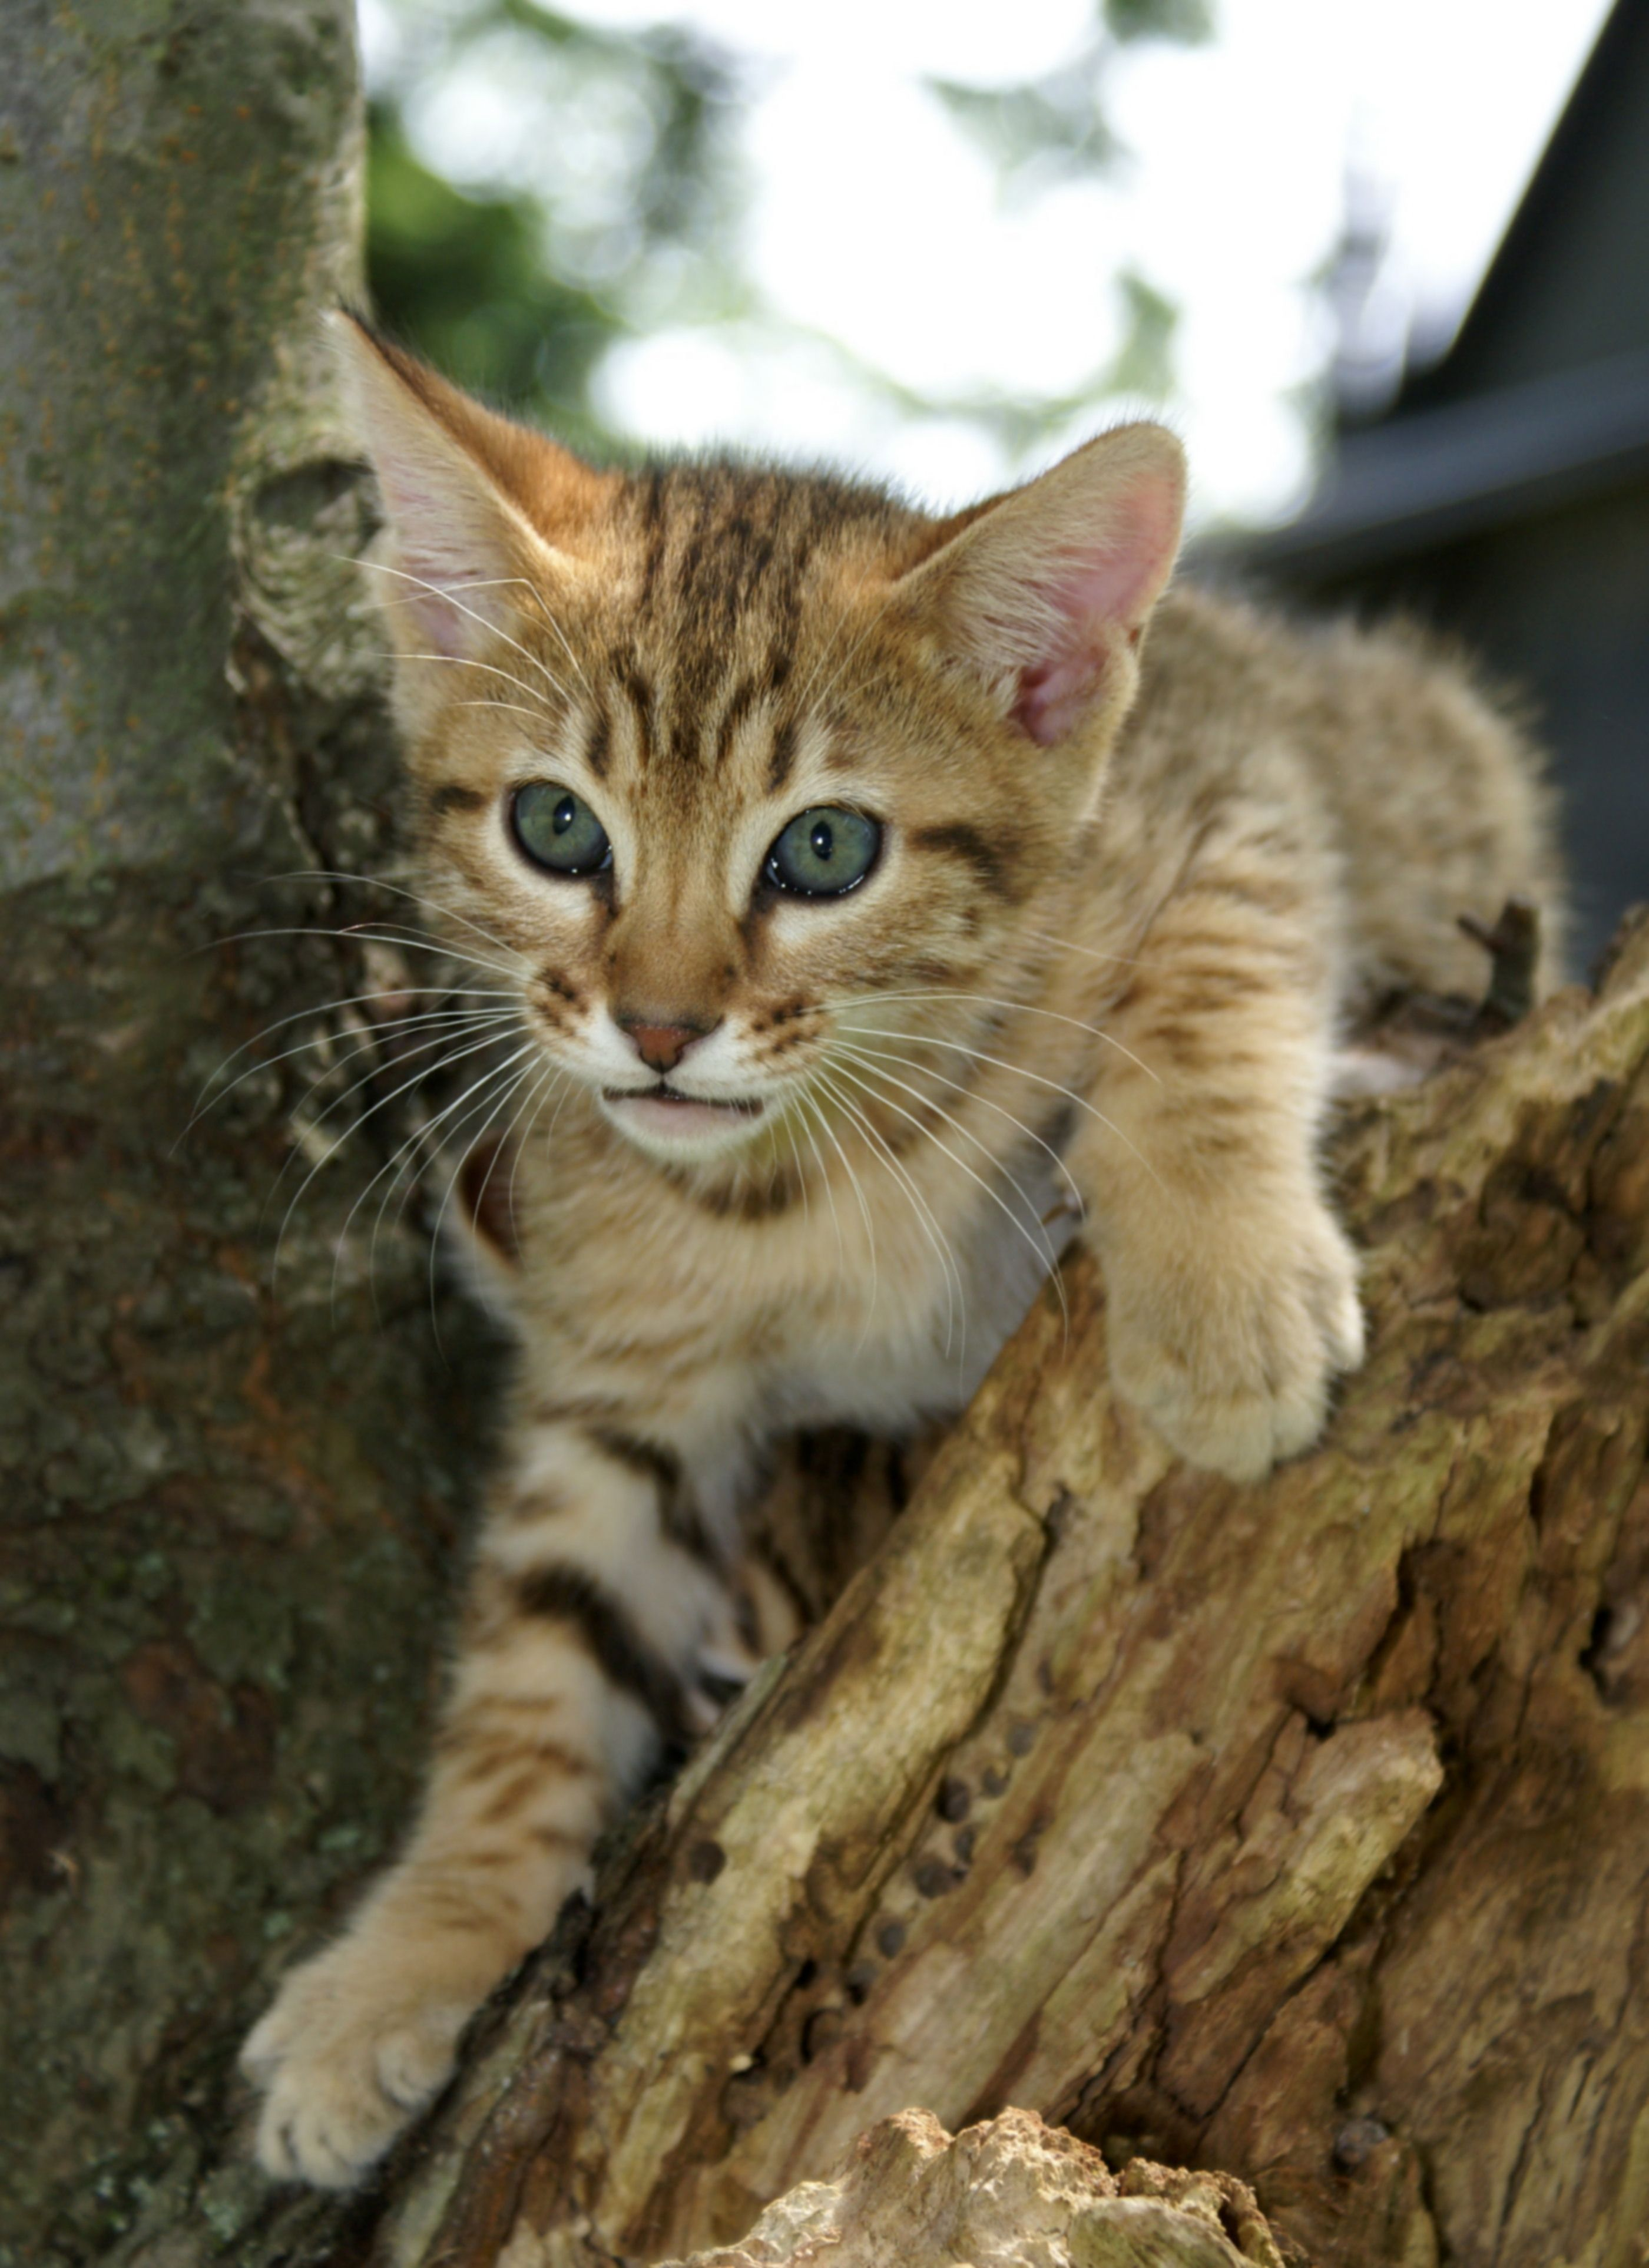 The Cheetoh Is A Breed Of Domestic Cat Derived From Crossings